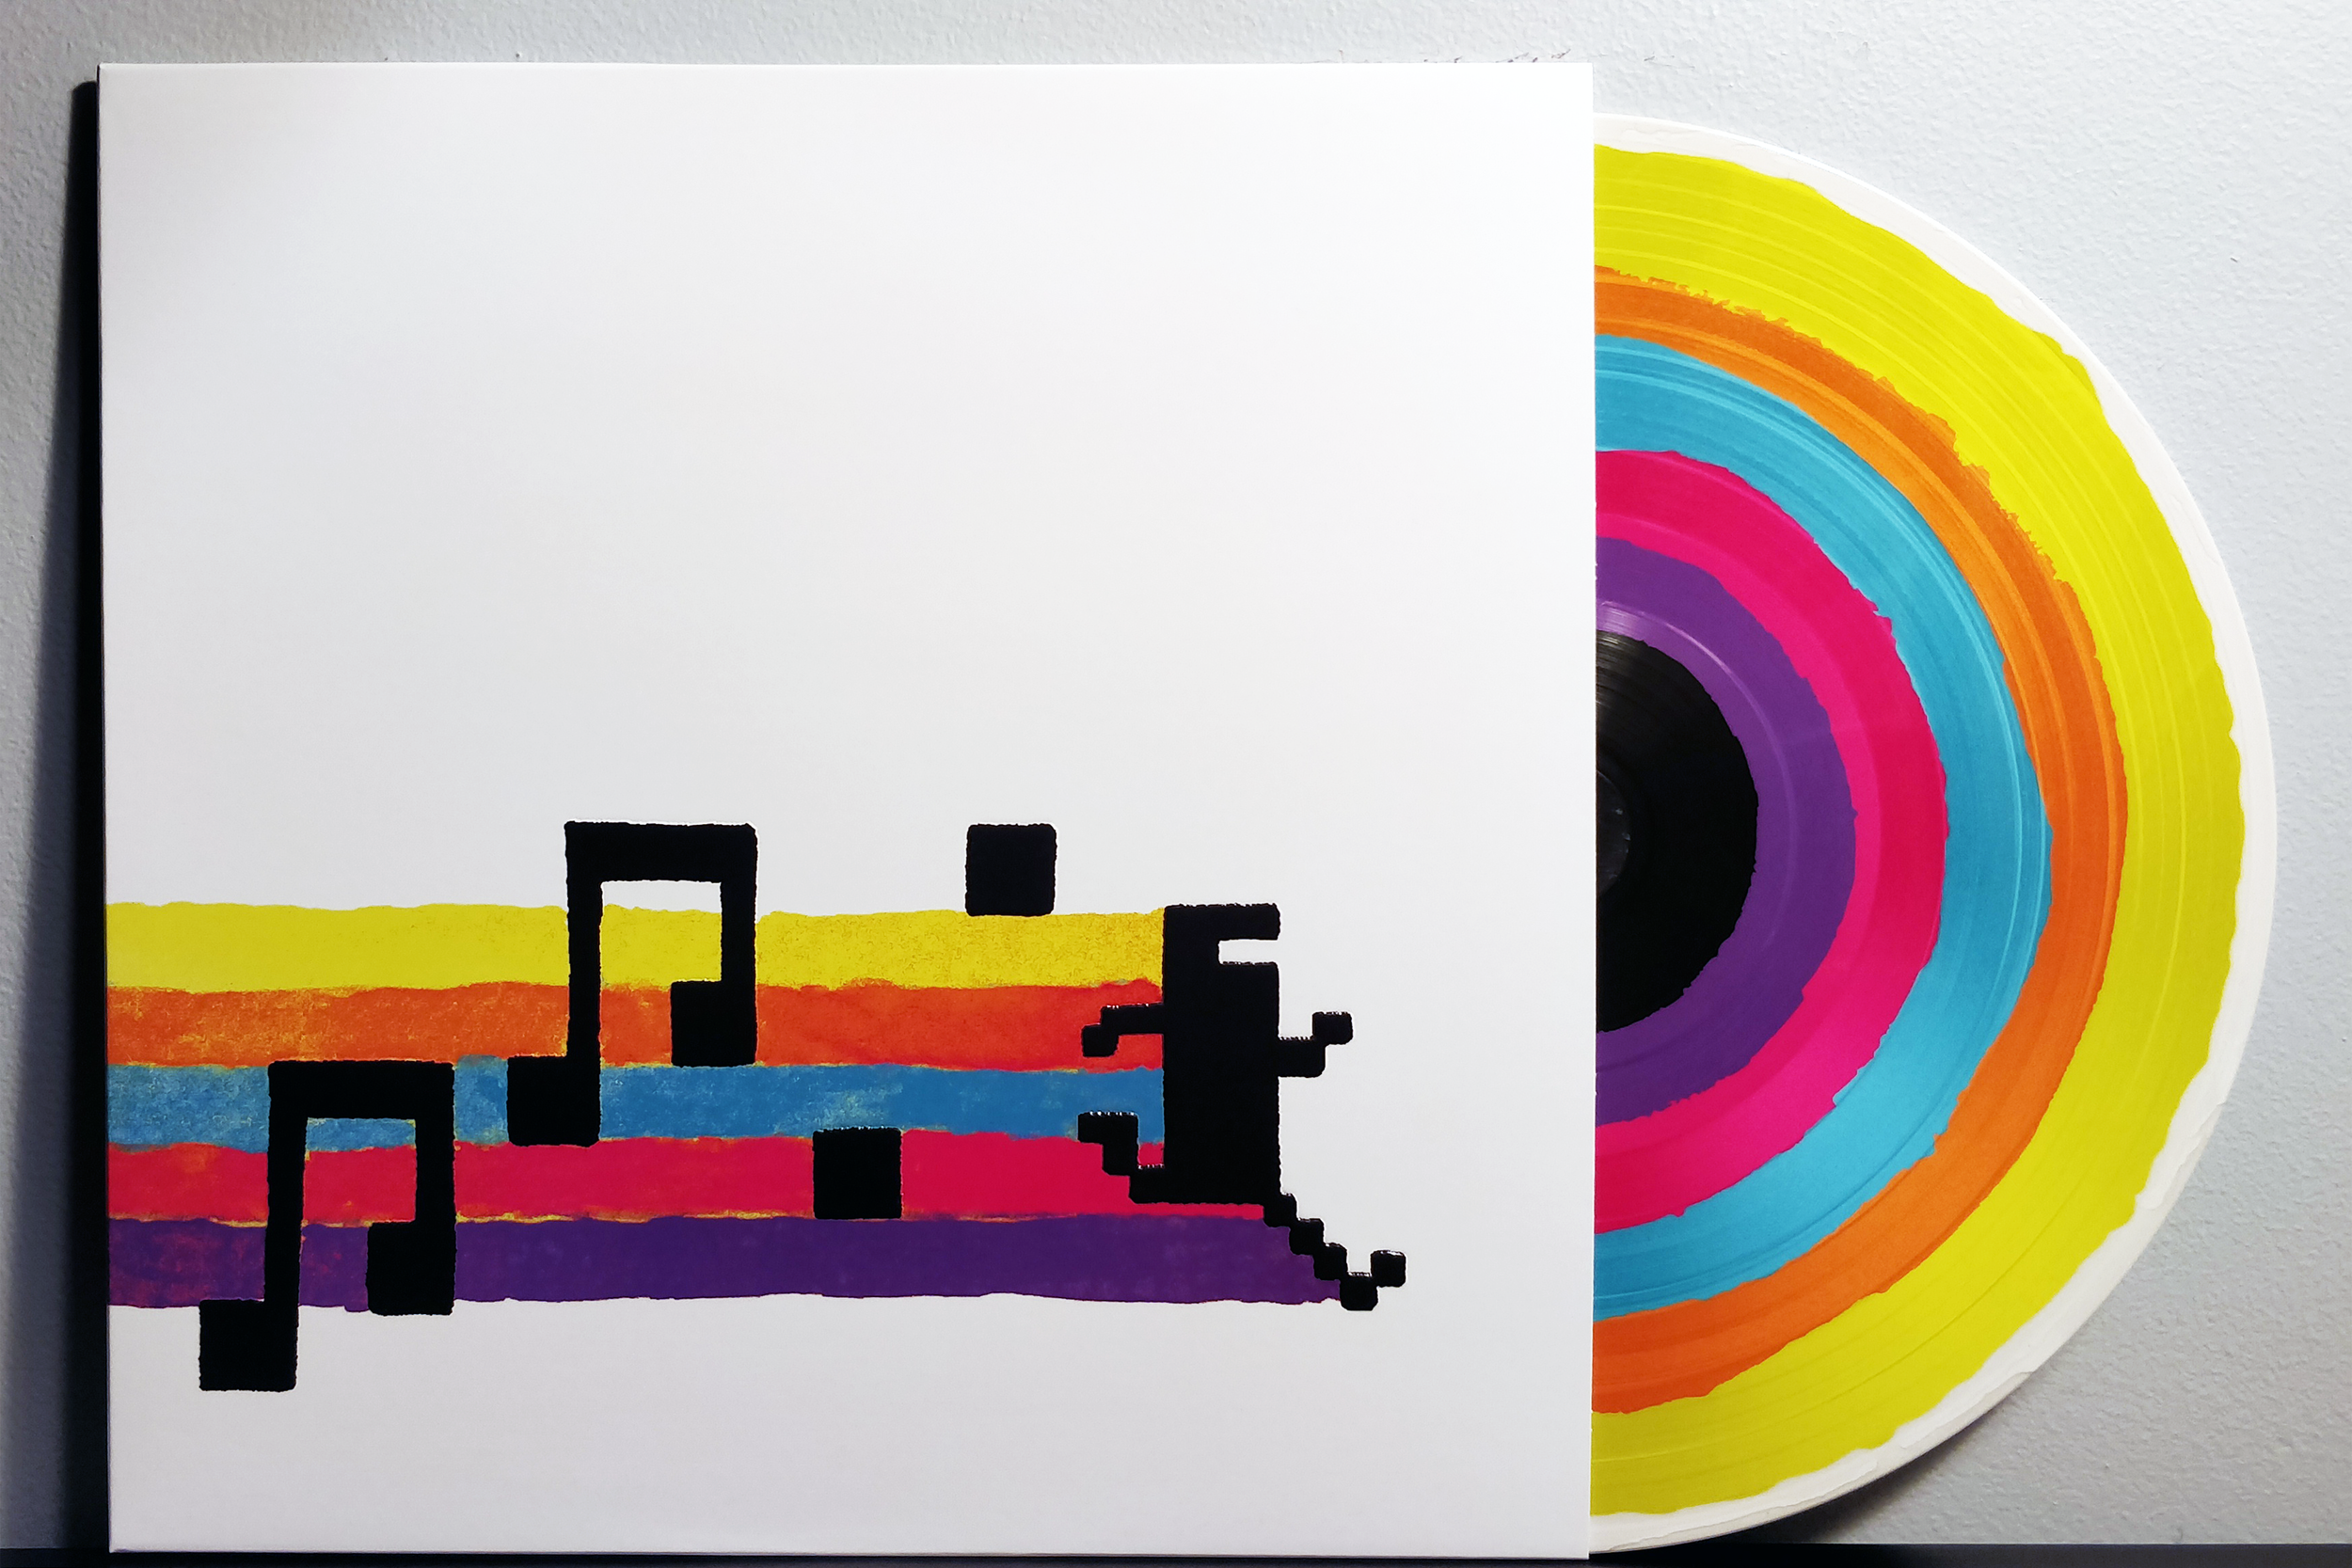 BIT.TRIP's Greatest Chips by Bit Shifter, Bubblyfish, Nullsleep, Anamanaguchi, and minusbaby pressed on picture disc vinyl by iam8bit.